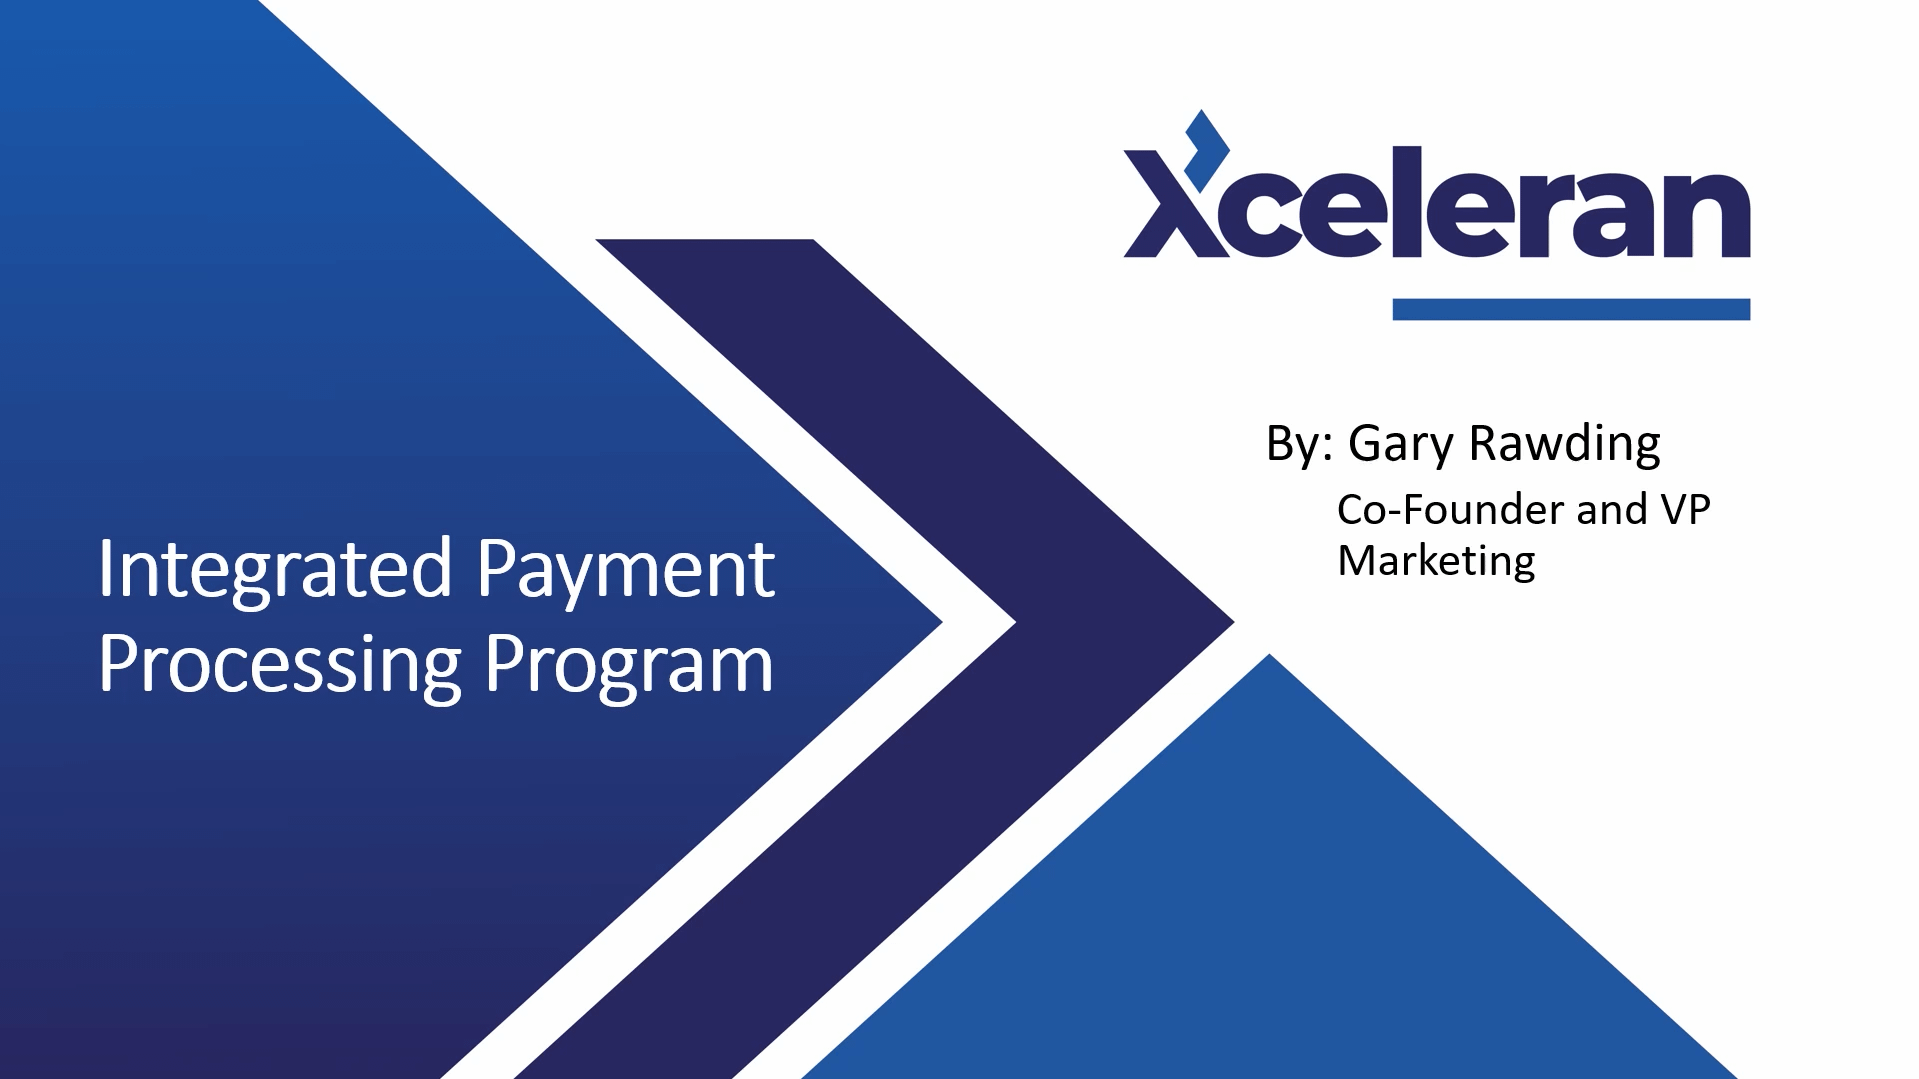 Screenshot 326 Our Payment Processing Program combines our XceleranCC Virtual Terminal with our partners Financial Technologies. Global Payments Integrated, with over 400,000 merchants, is a leader in payment processing providing stability, great programs, and meet or beat pricing.